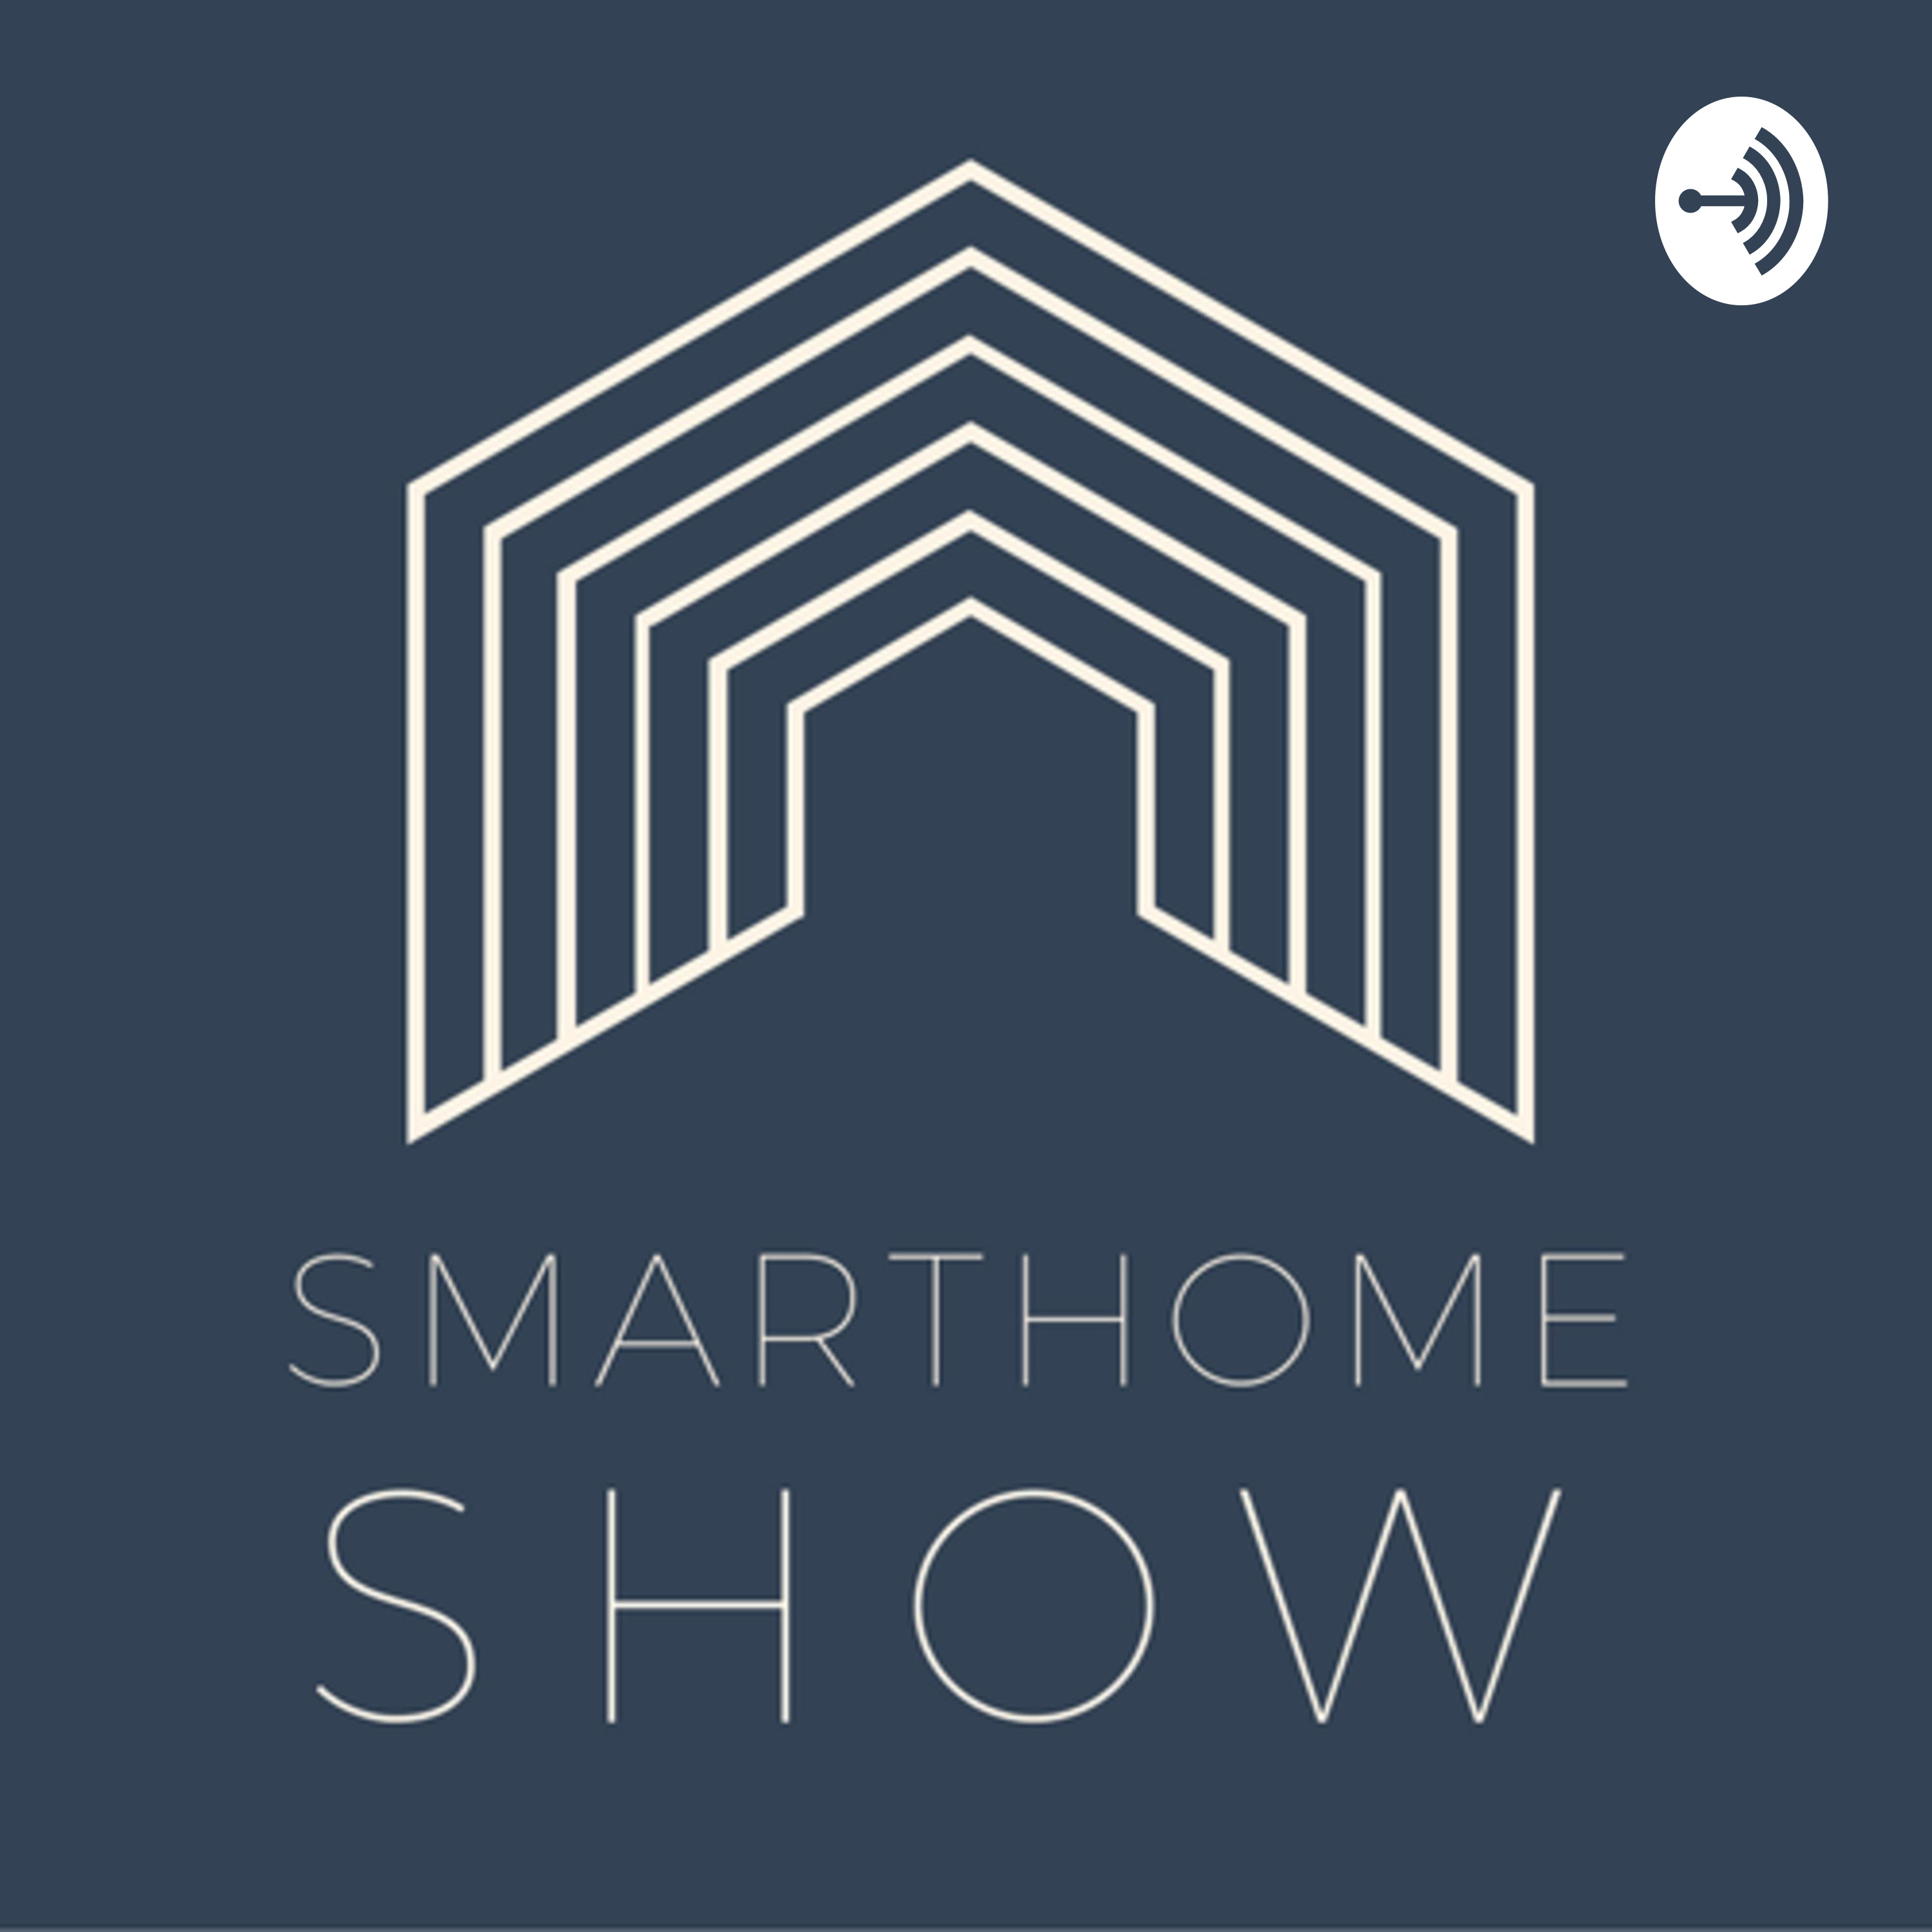 Jason talks with Colin Billings, Founder/CEO of Orro, the first truly responsive home lighting system.